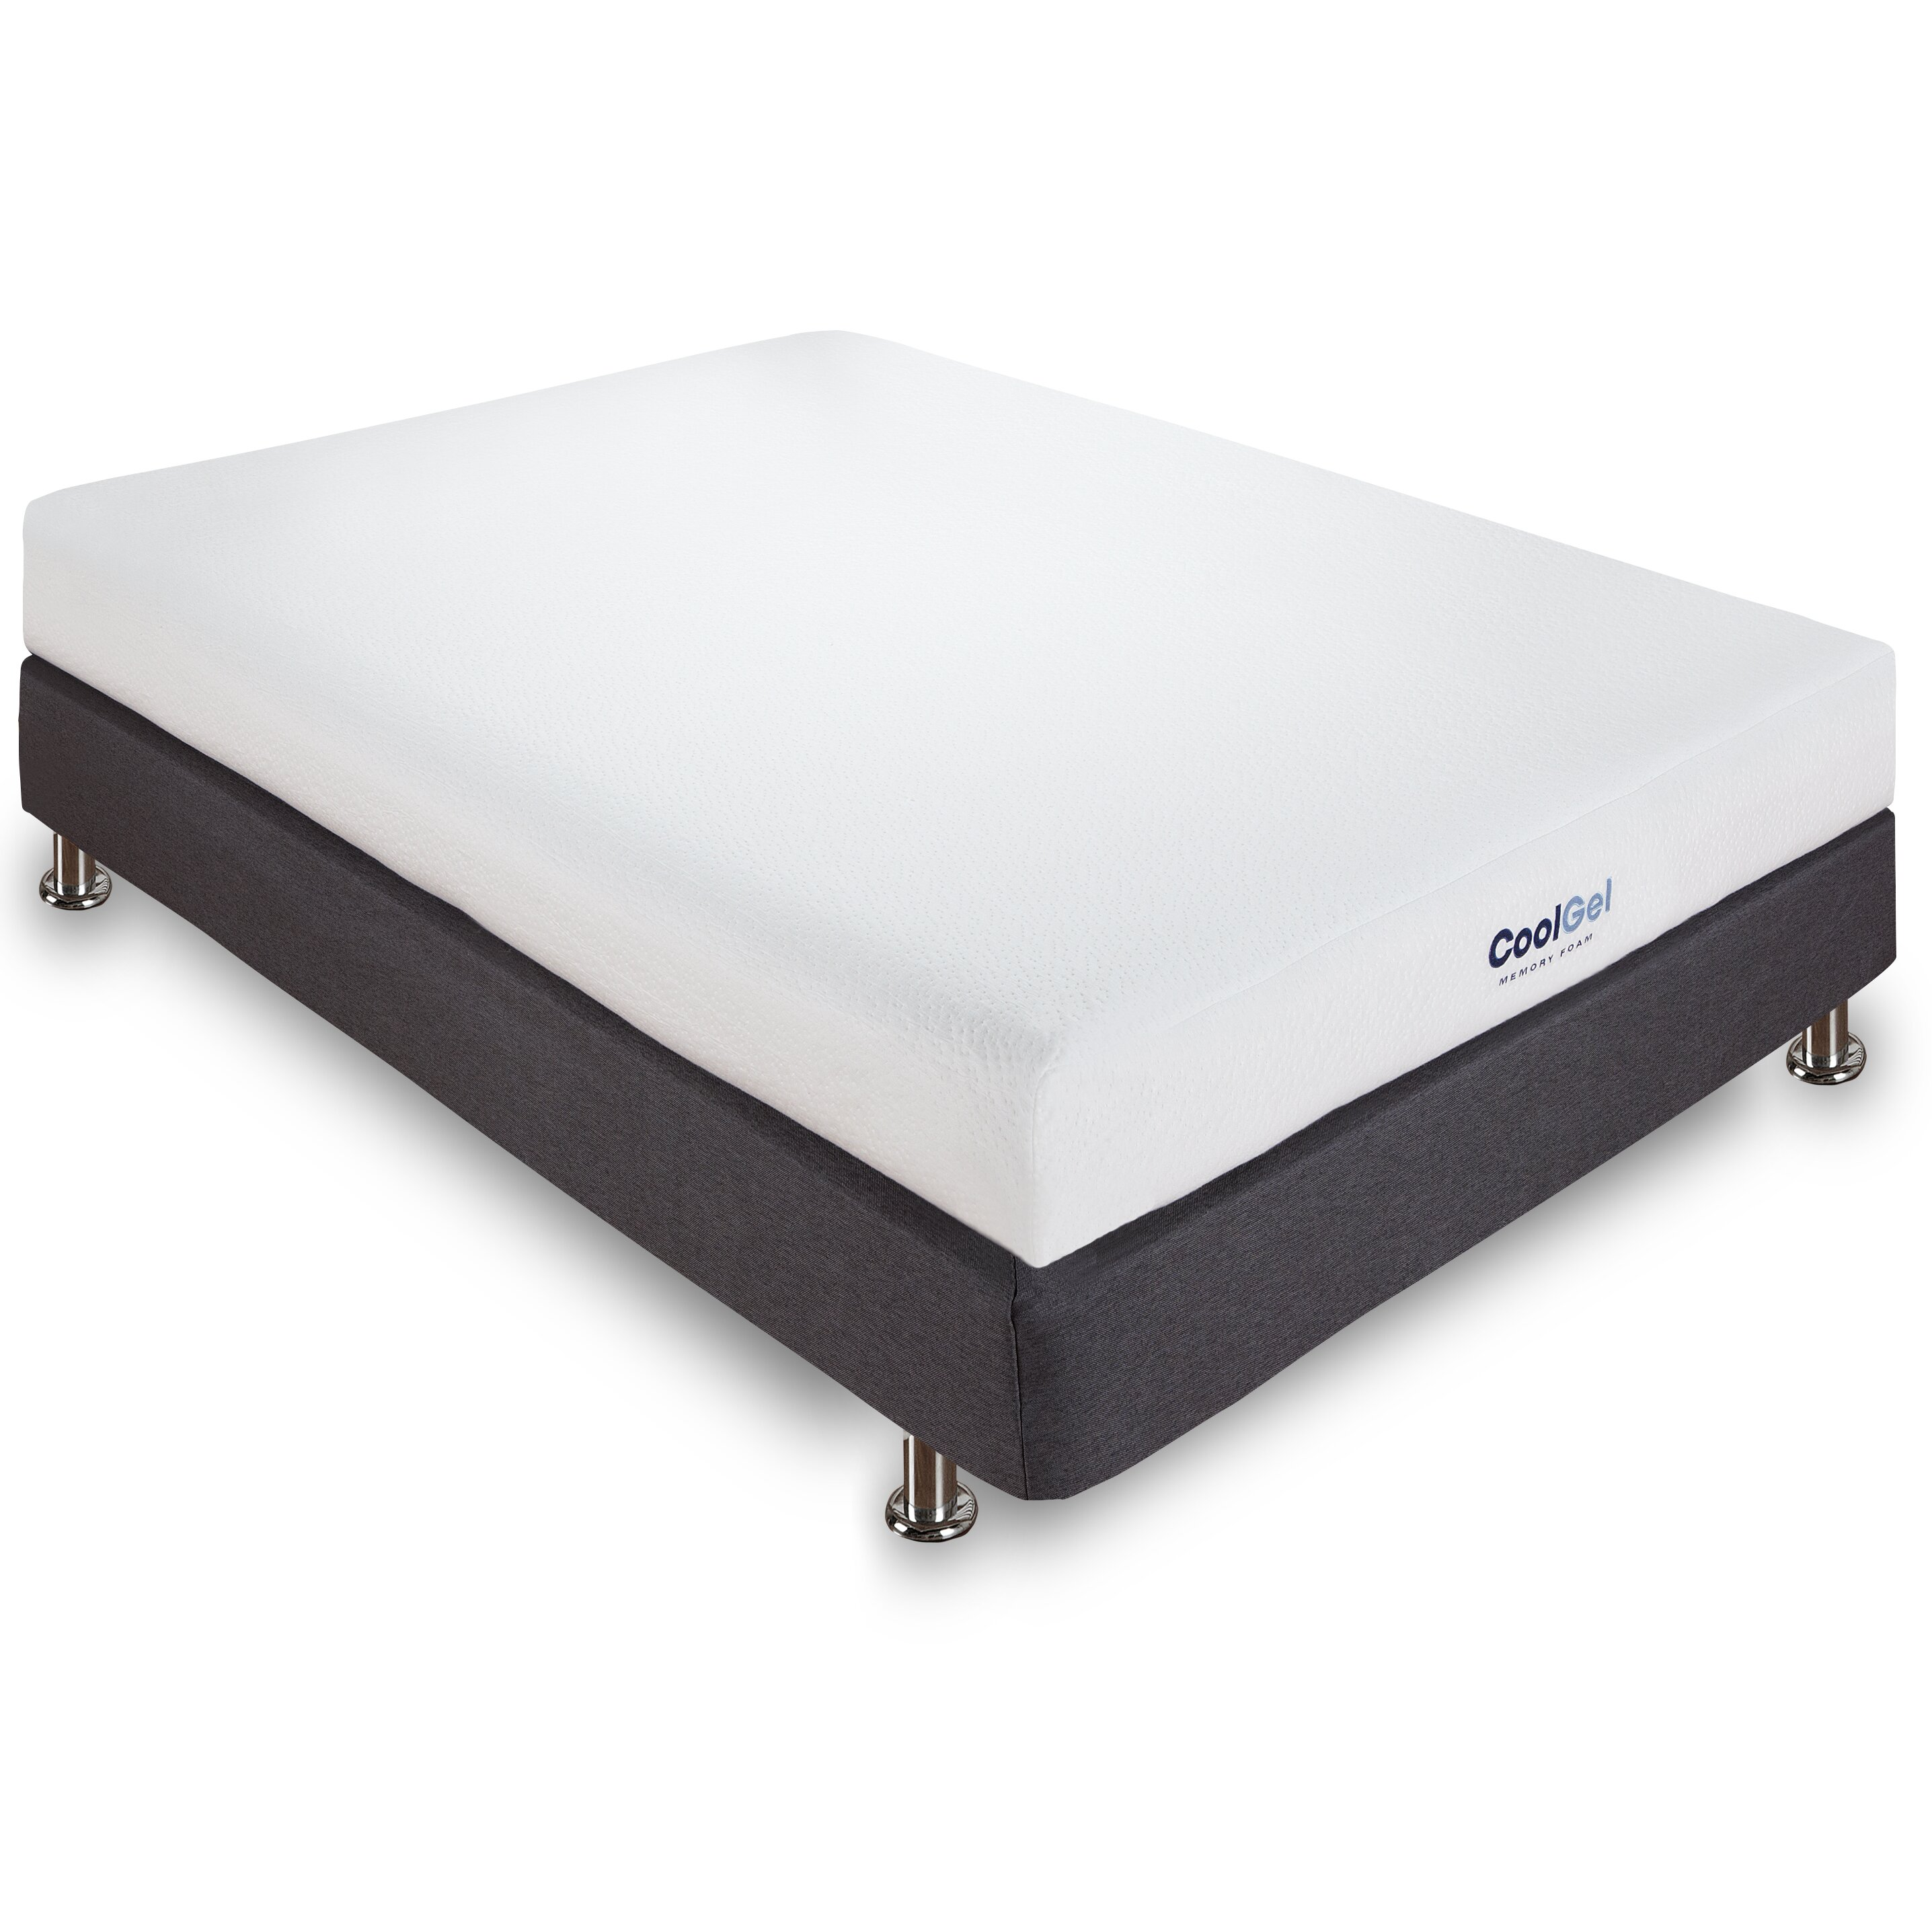 Classic Brands 6 Gel Memory Foam Mattress Reviews Wayfair: where to buy mattress foam